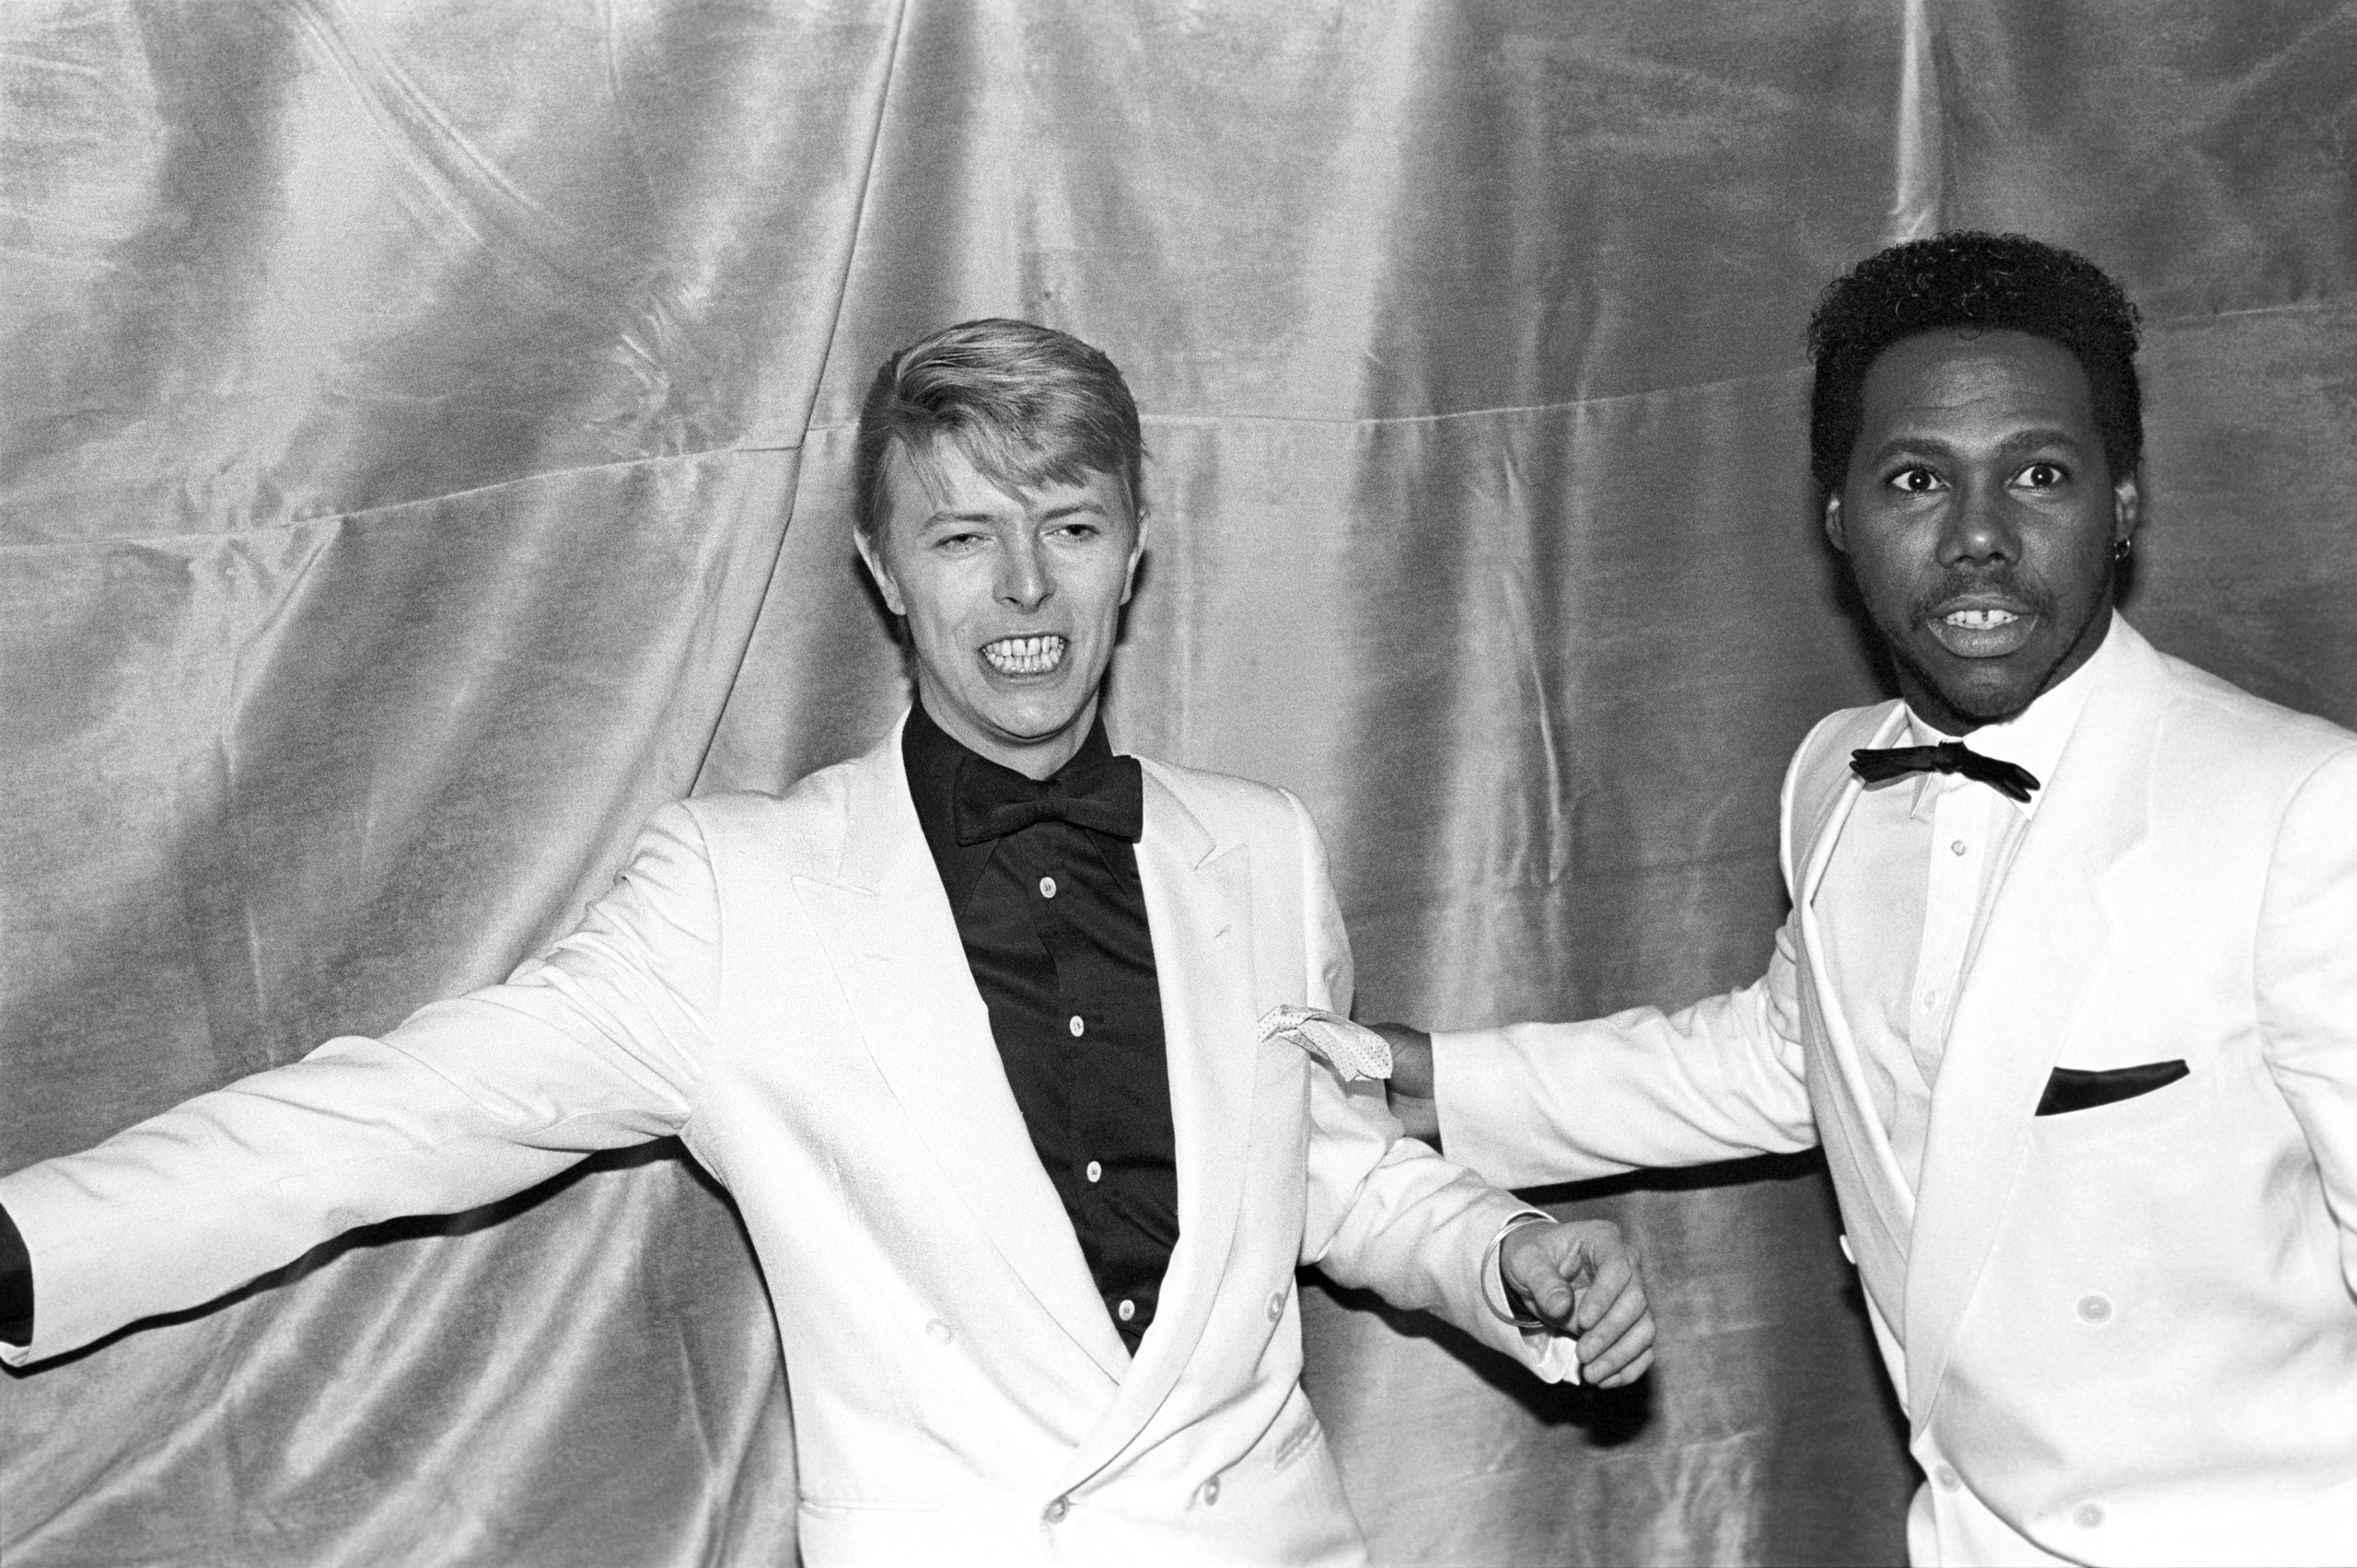 David Bowie with Nile Rodgers of Chic at the Frankie Crocker Awards at the Savoy in New York, on Jan. 21, 1983.